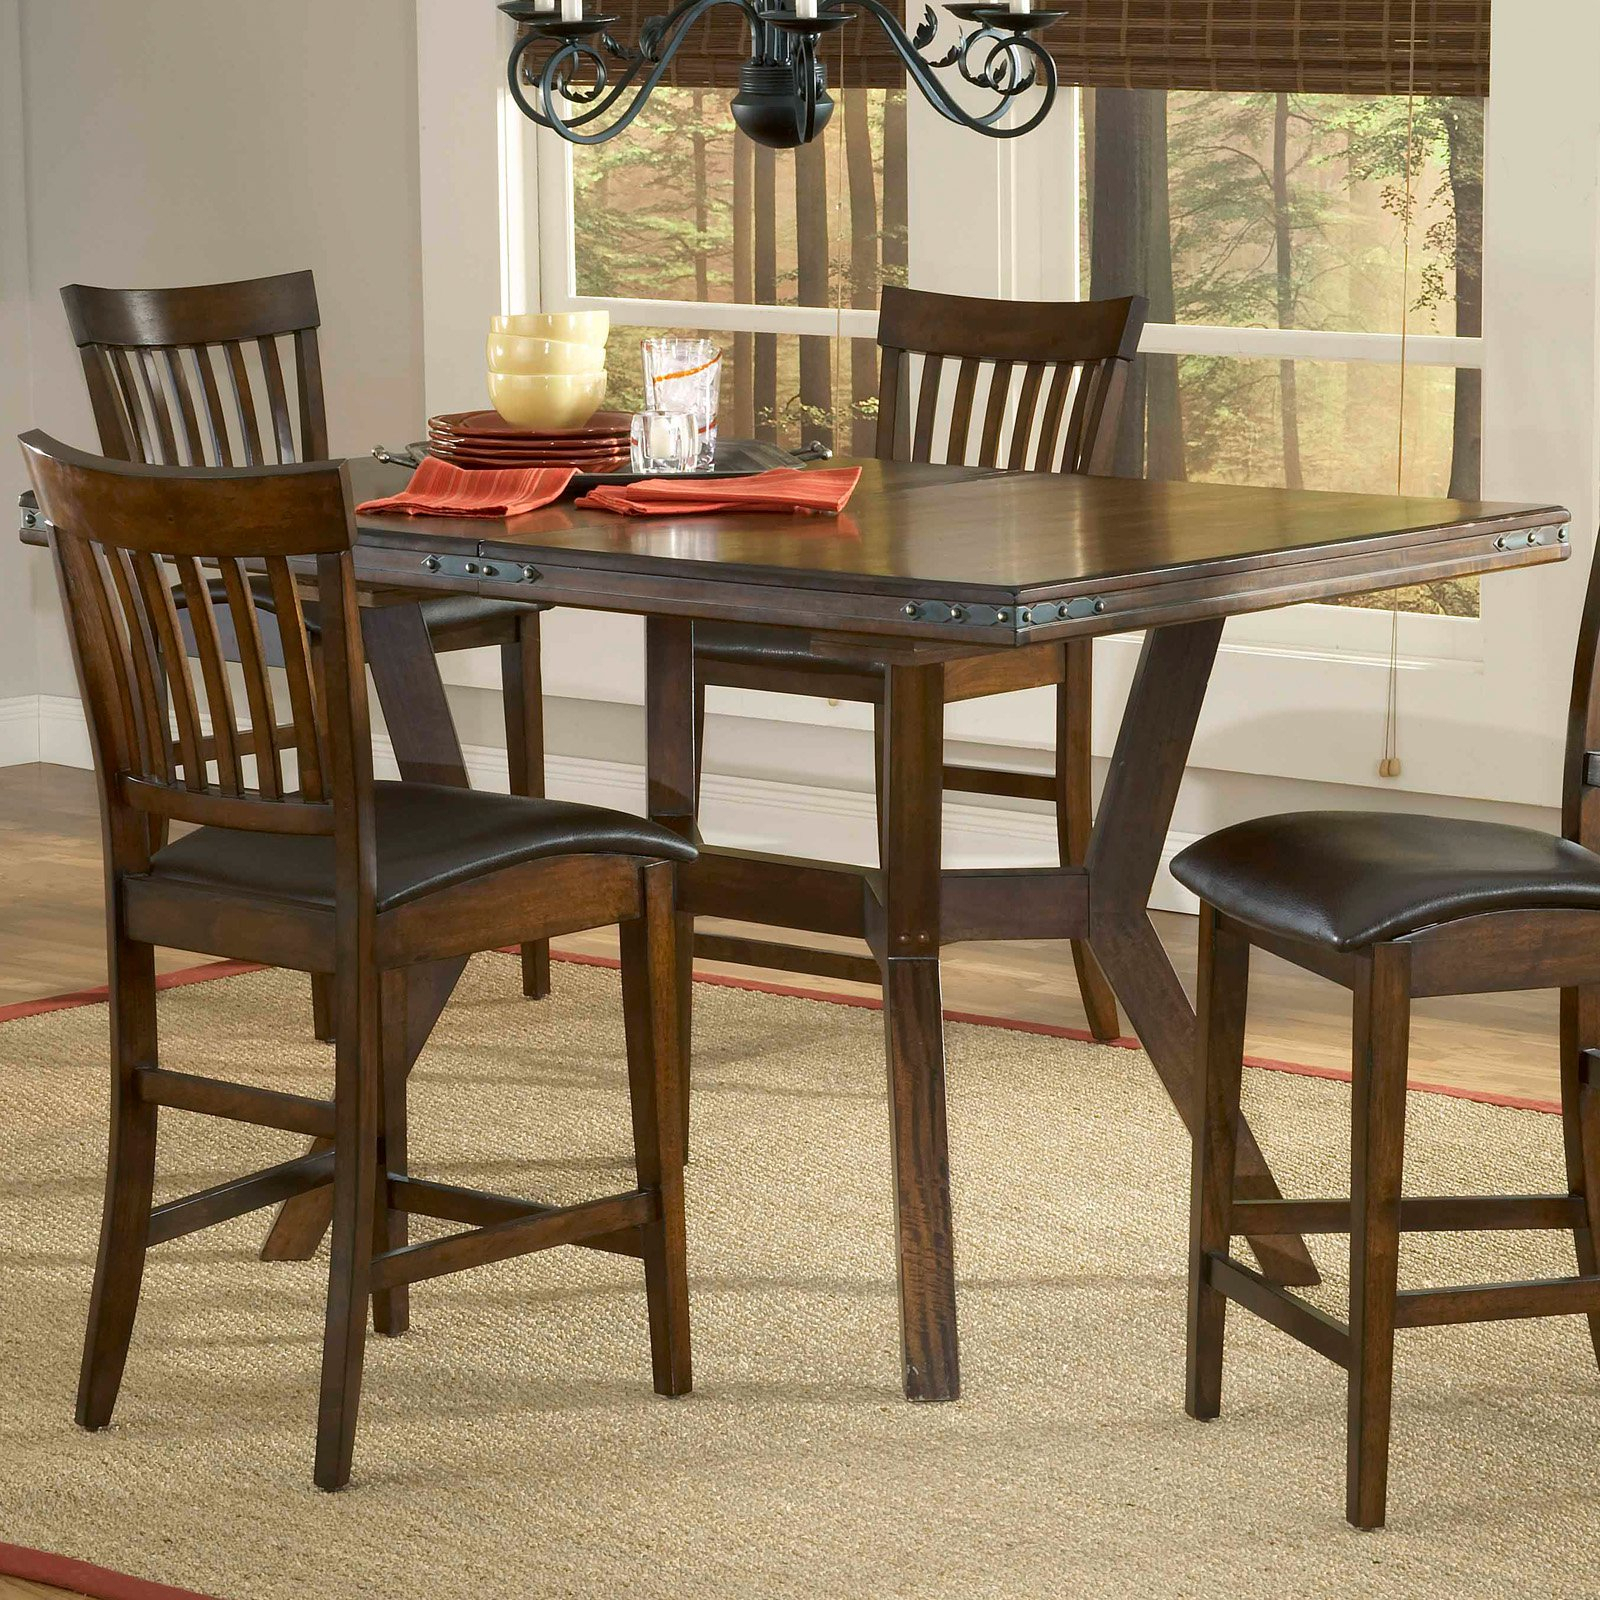 Hillsdale Arbor Hill Extension Counter Height Table In 2019 Regarding 2018 Avondale Counter Height Dining Tables (View 17 of 25)